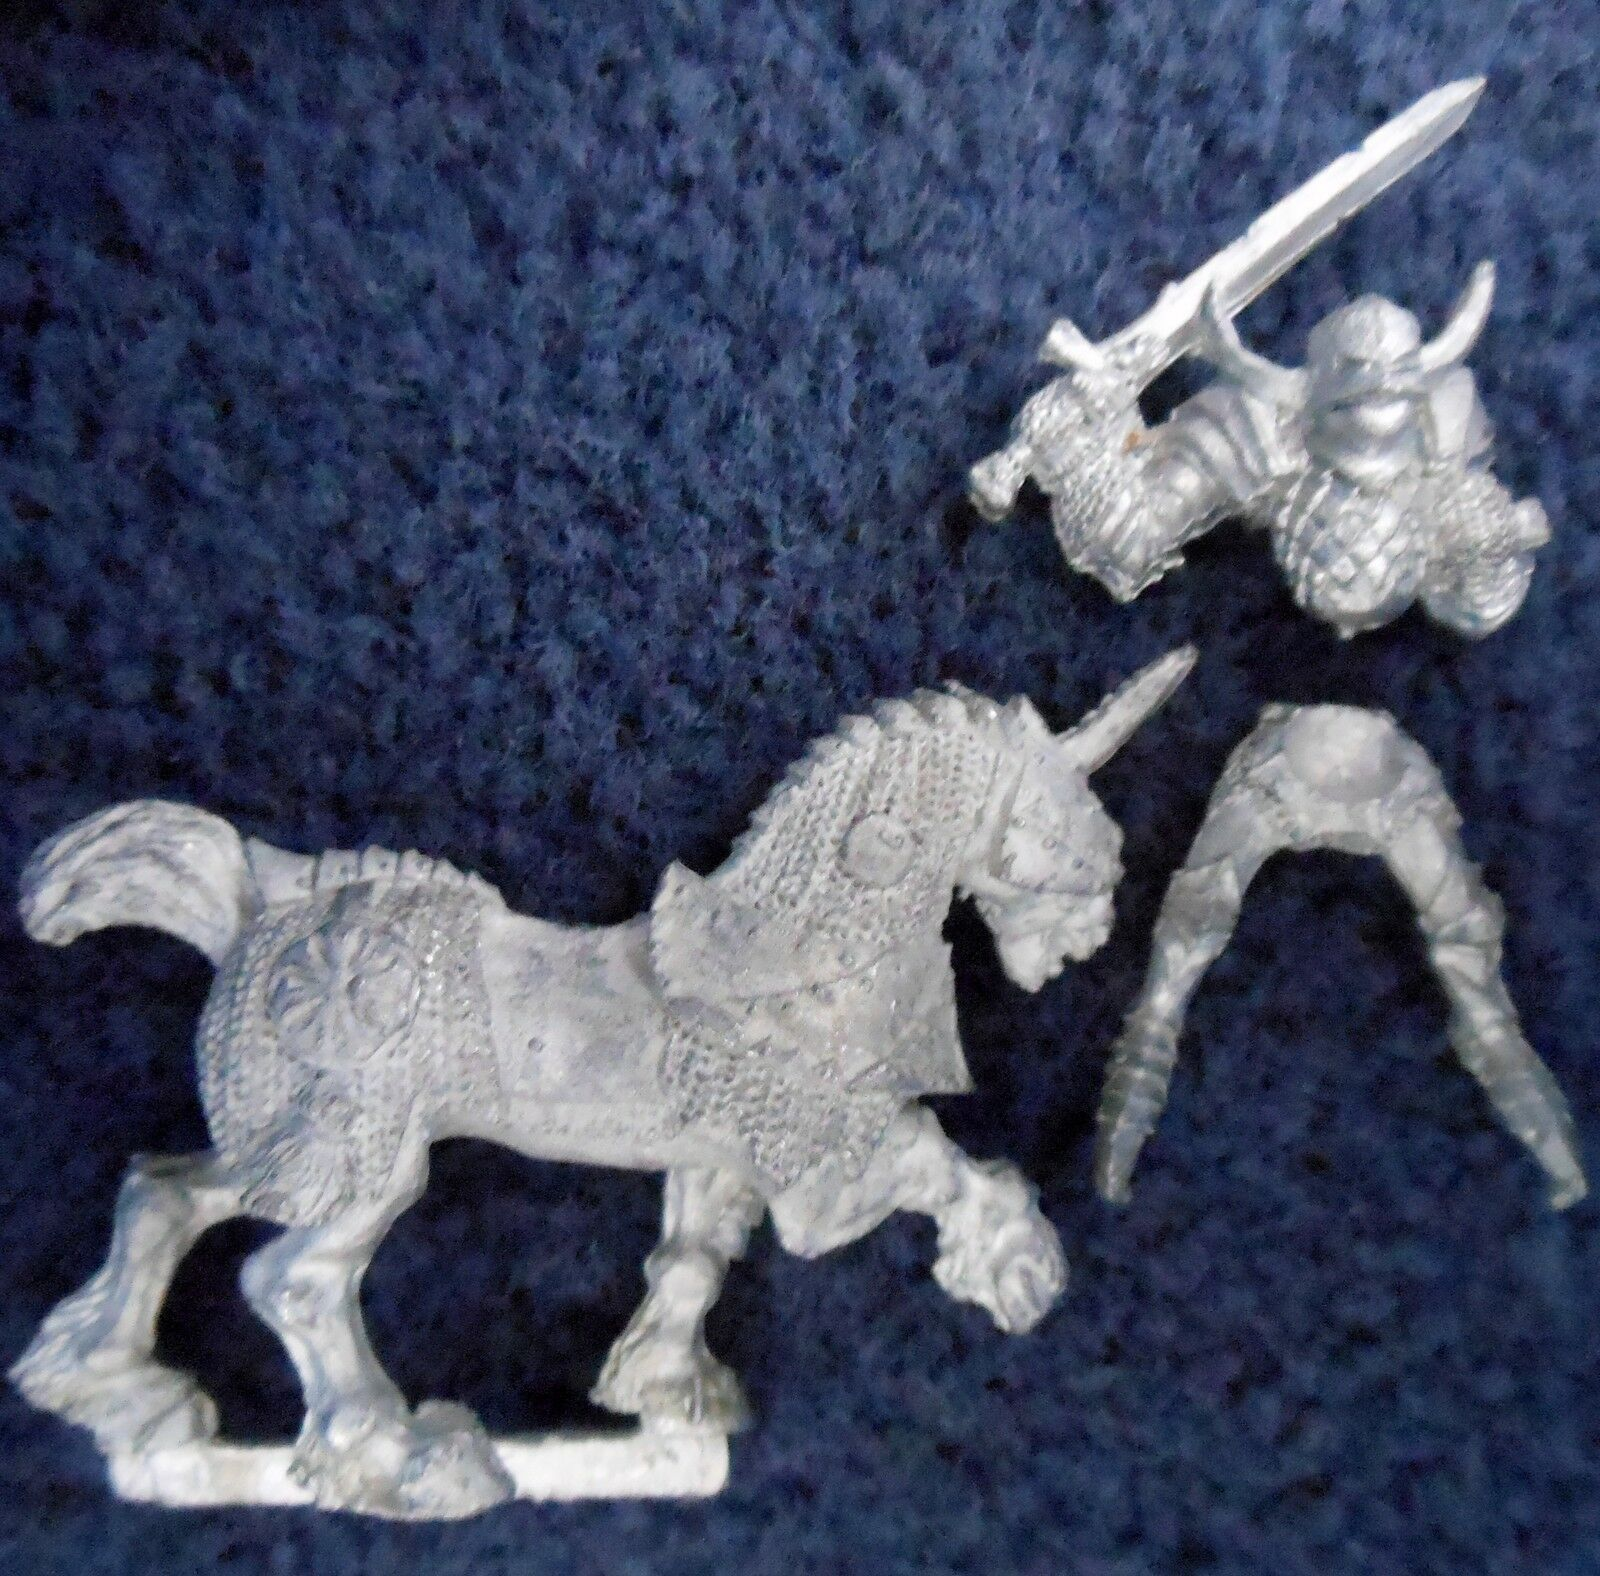 1988 Chaos Knight 0221 03 Games Workshop Warhammer Army Realm of Warrior Cavalry